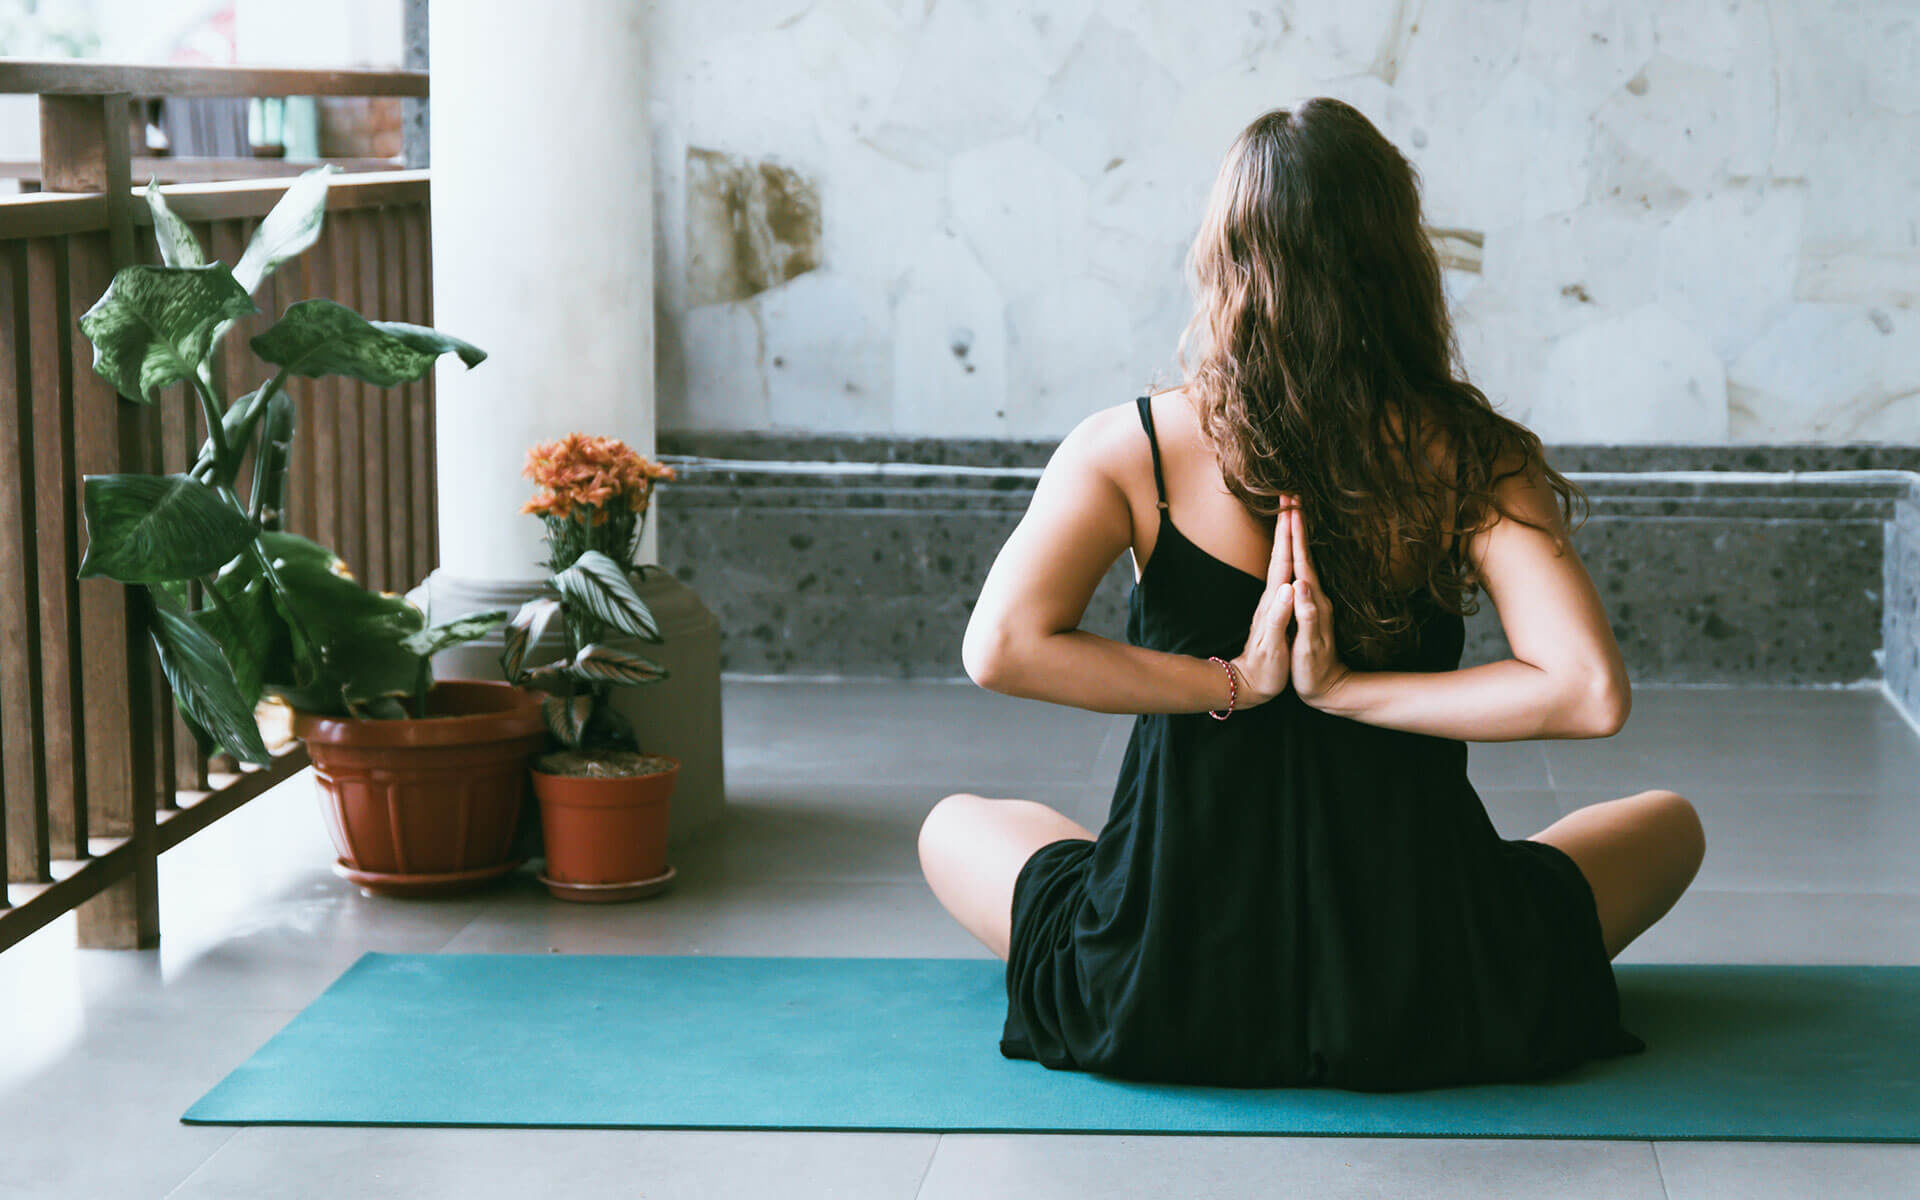 woman wearing black doing yoga next to potted plants